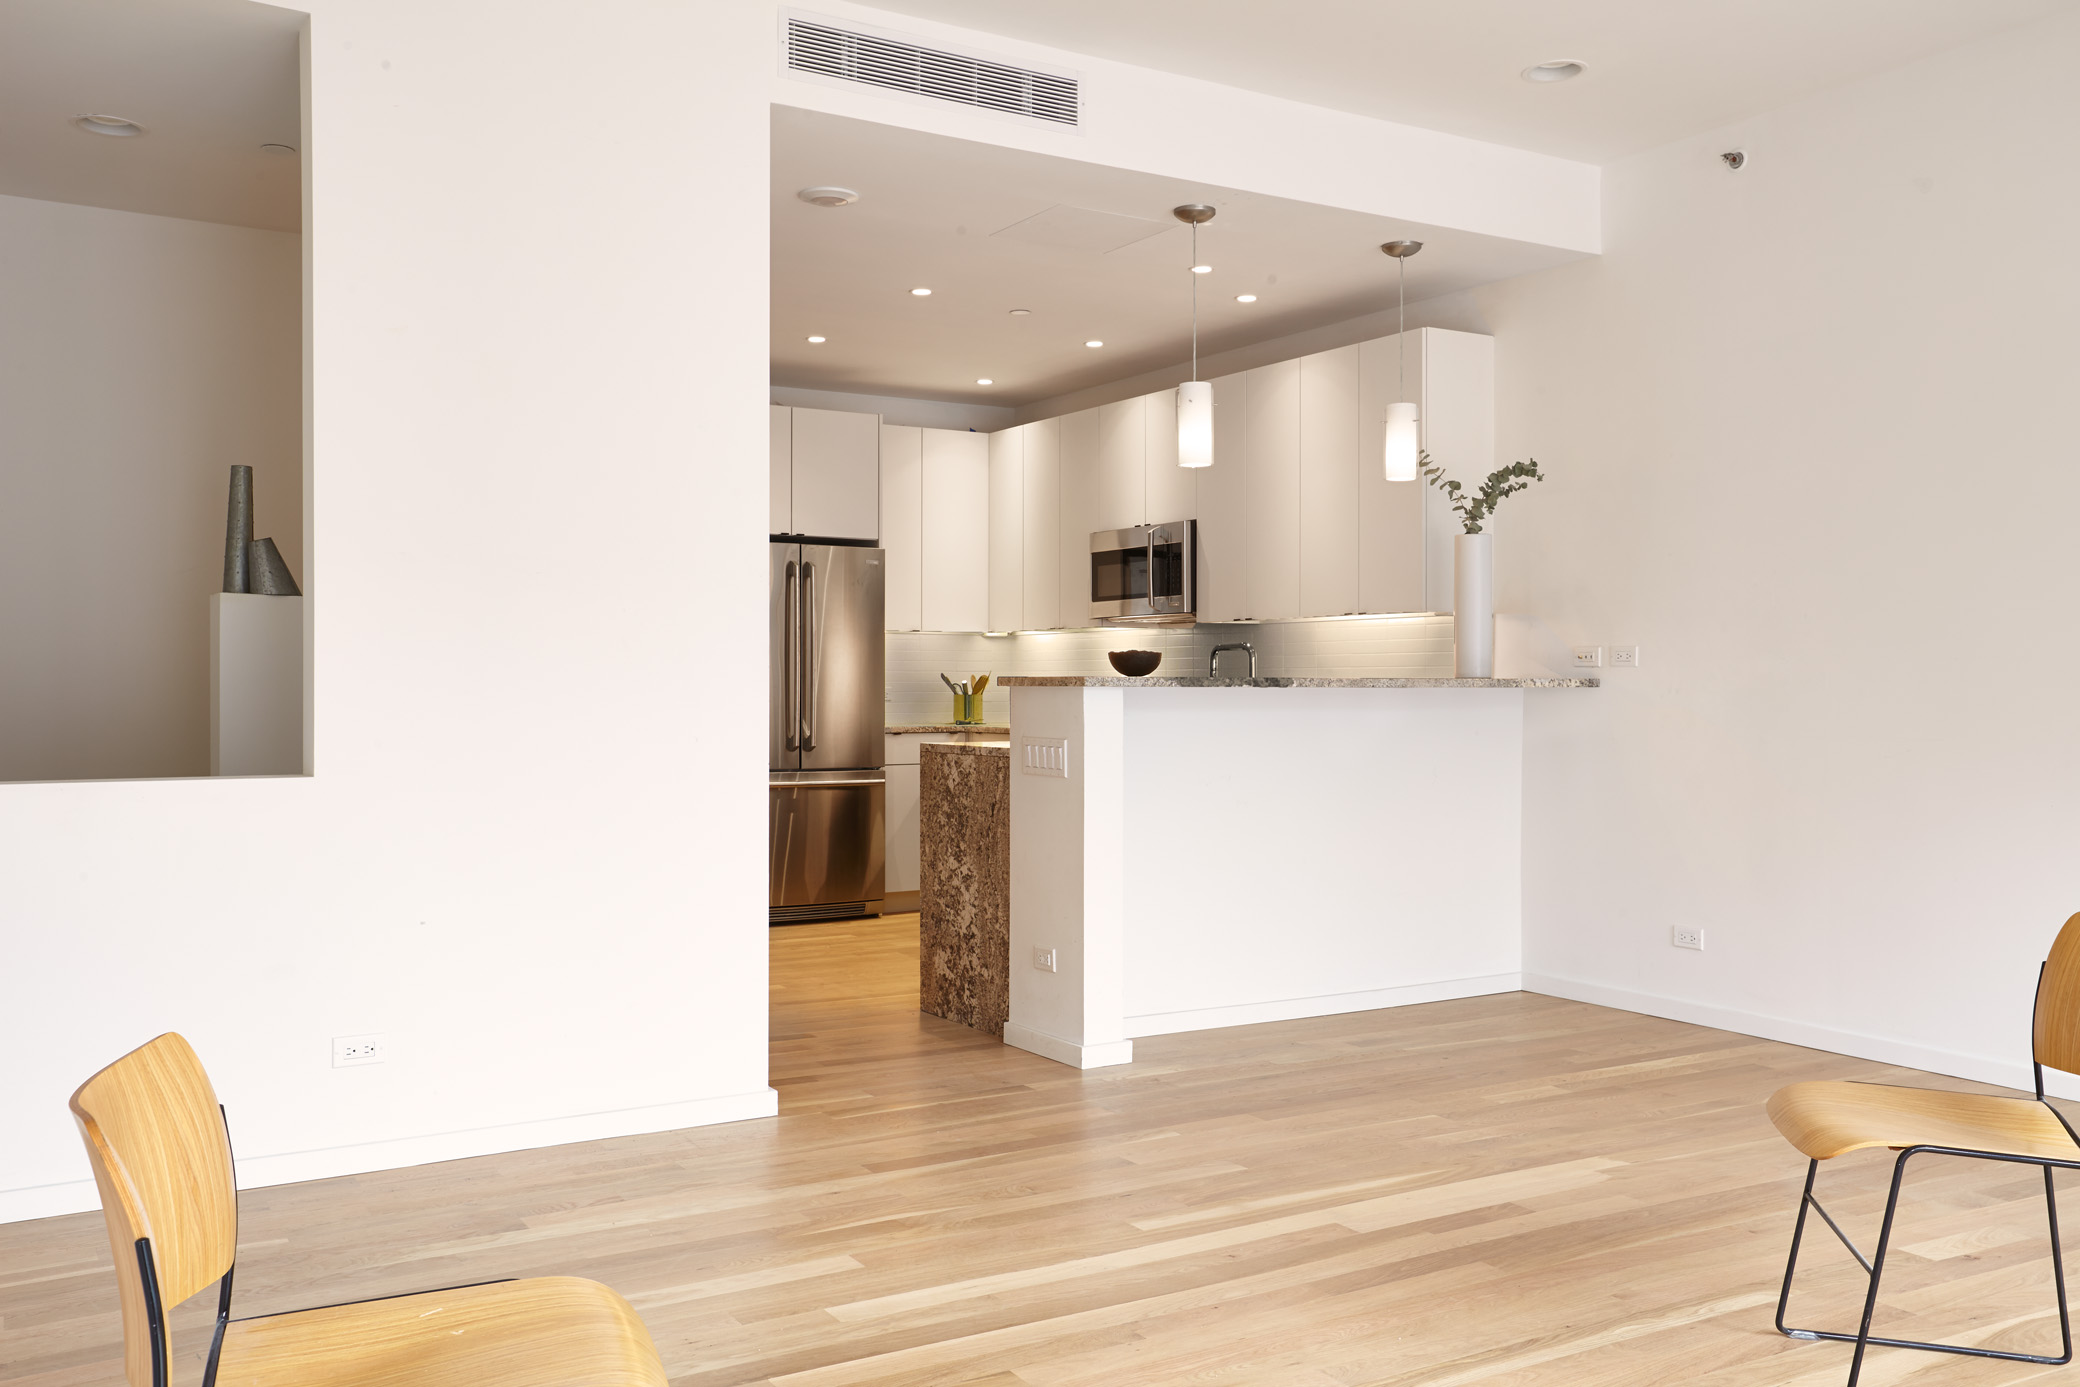 """We estimate for a high-quality, efficient project like this, there will be a five percent premium on standard costs,"" says Castrucci, who worked with Further Inc. on the project. ""It's not an extreme cost."" The kitchen includes white oak flooring, stone countertops, and Electrolux appliances."